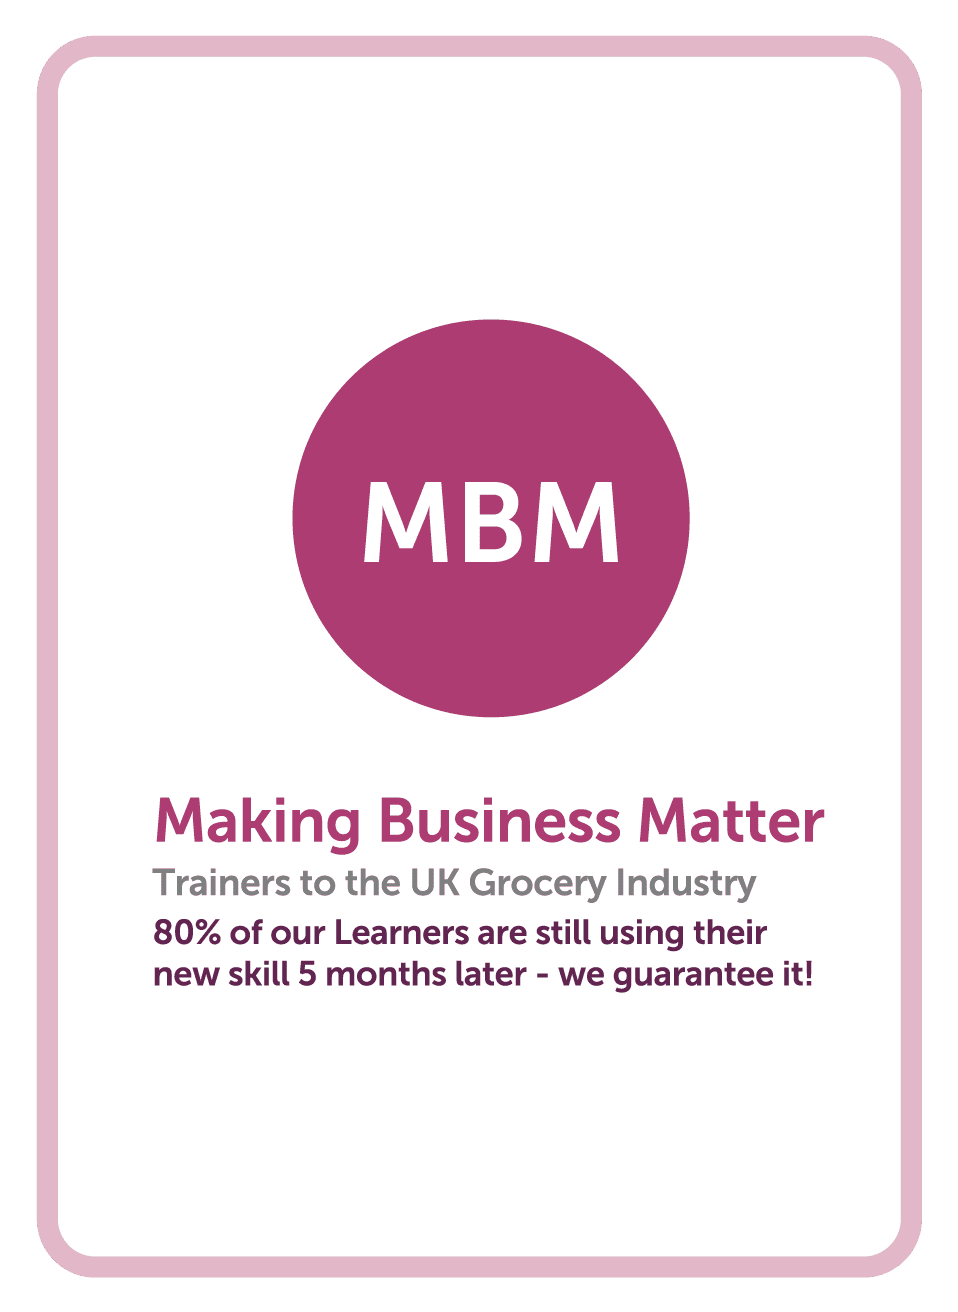 Coaching card with MBM logo in the centre